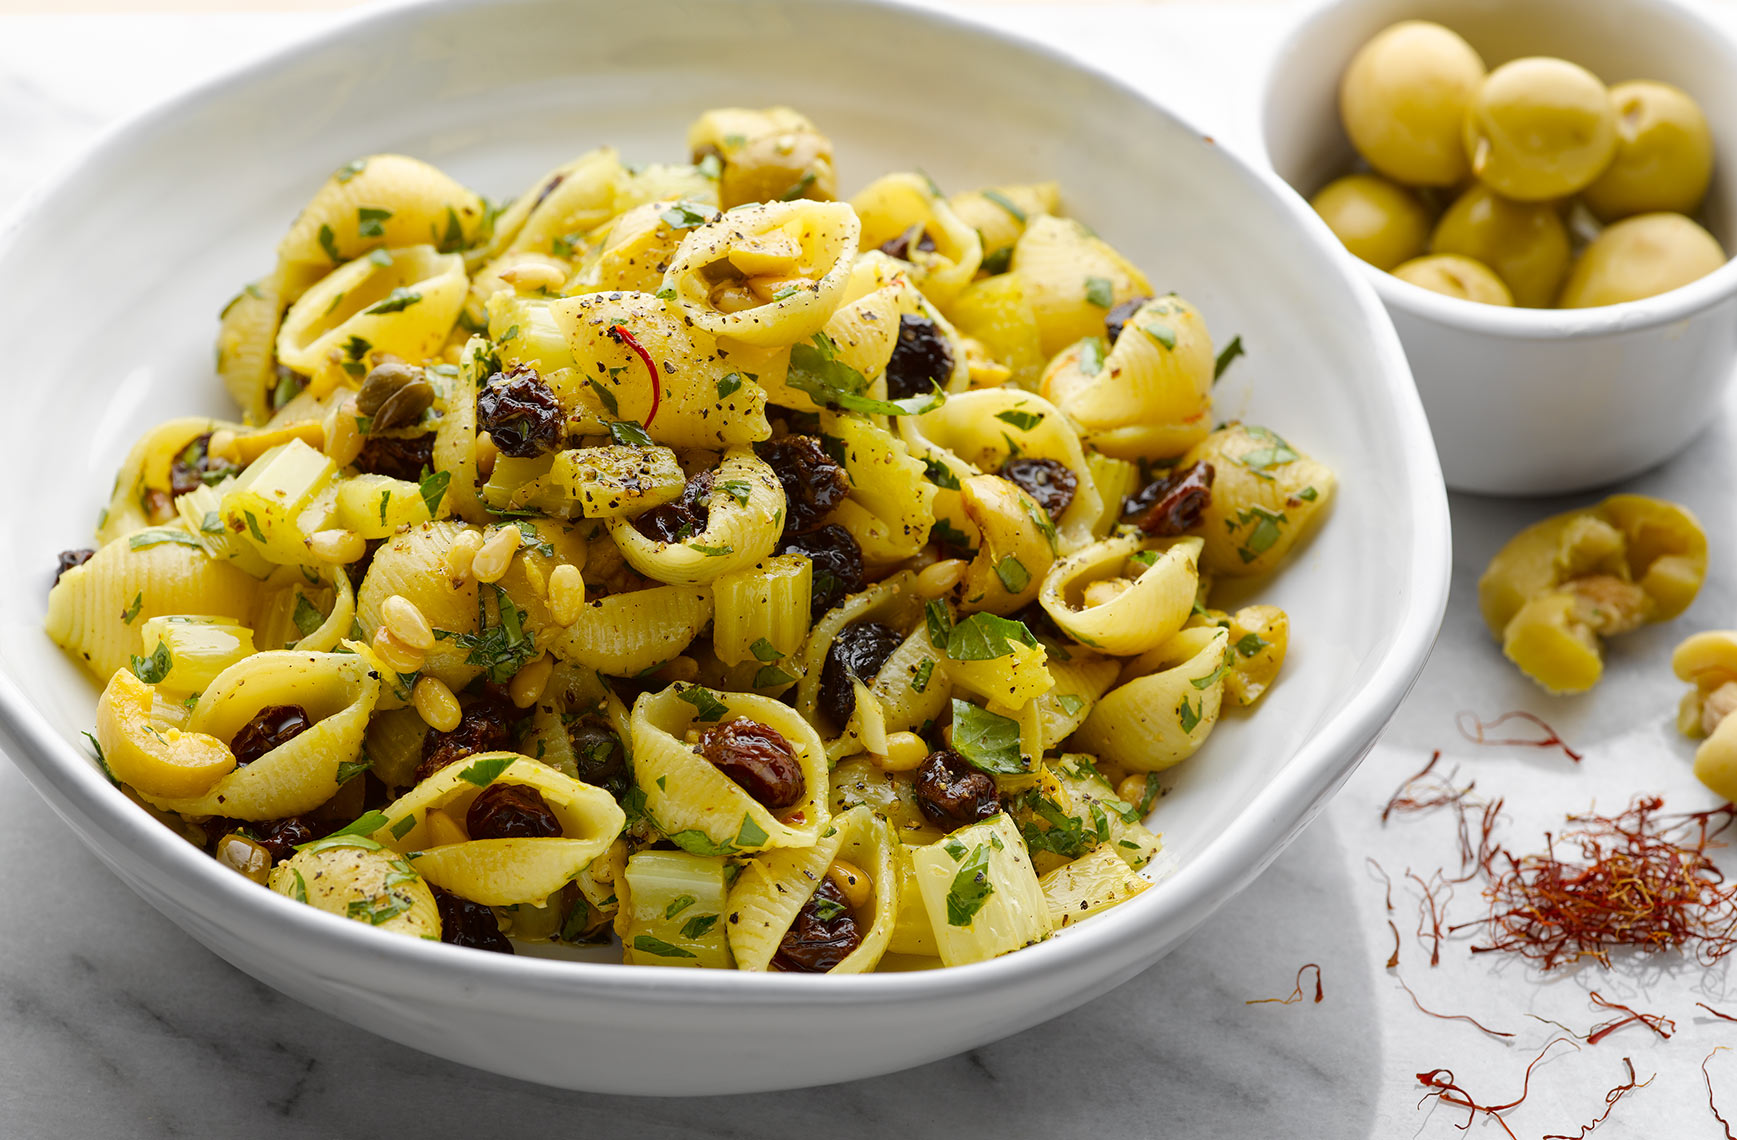 Ottolenghi Conchiglie with saffron | Colin Campbell-Food Photographer